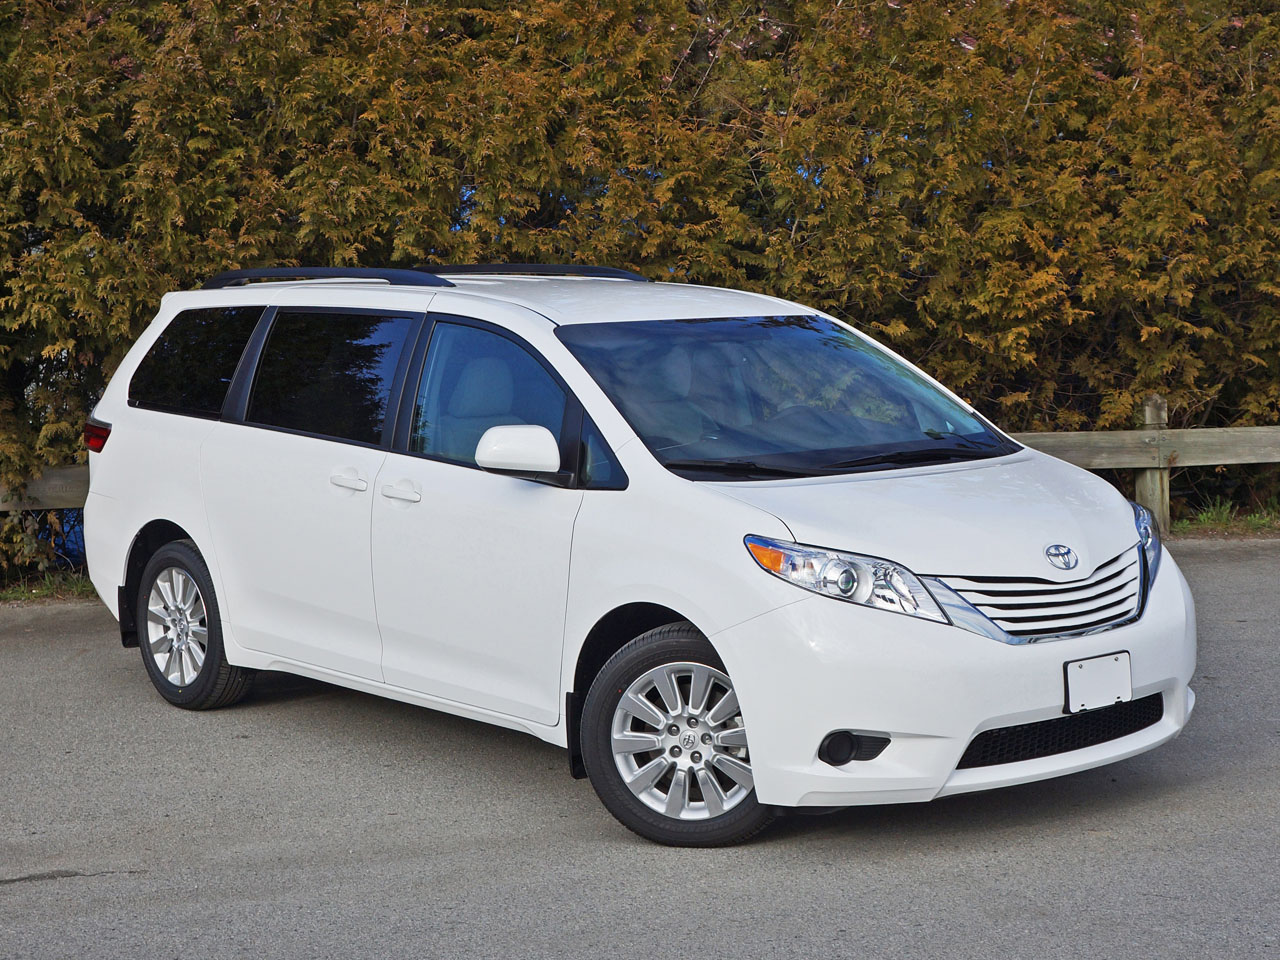 2015 toyota sienna le awd road test review carcostcanada. Black Bedroom Furniture Sets. Home Design Ideas